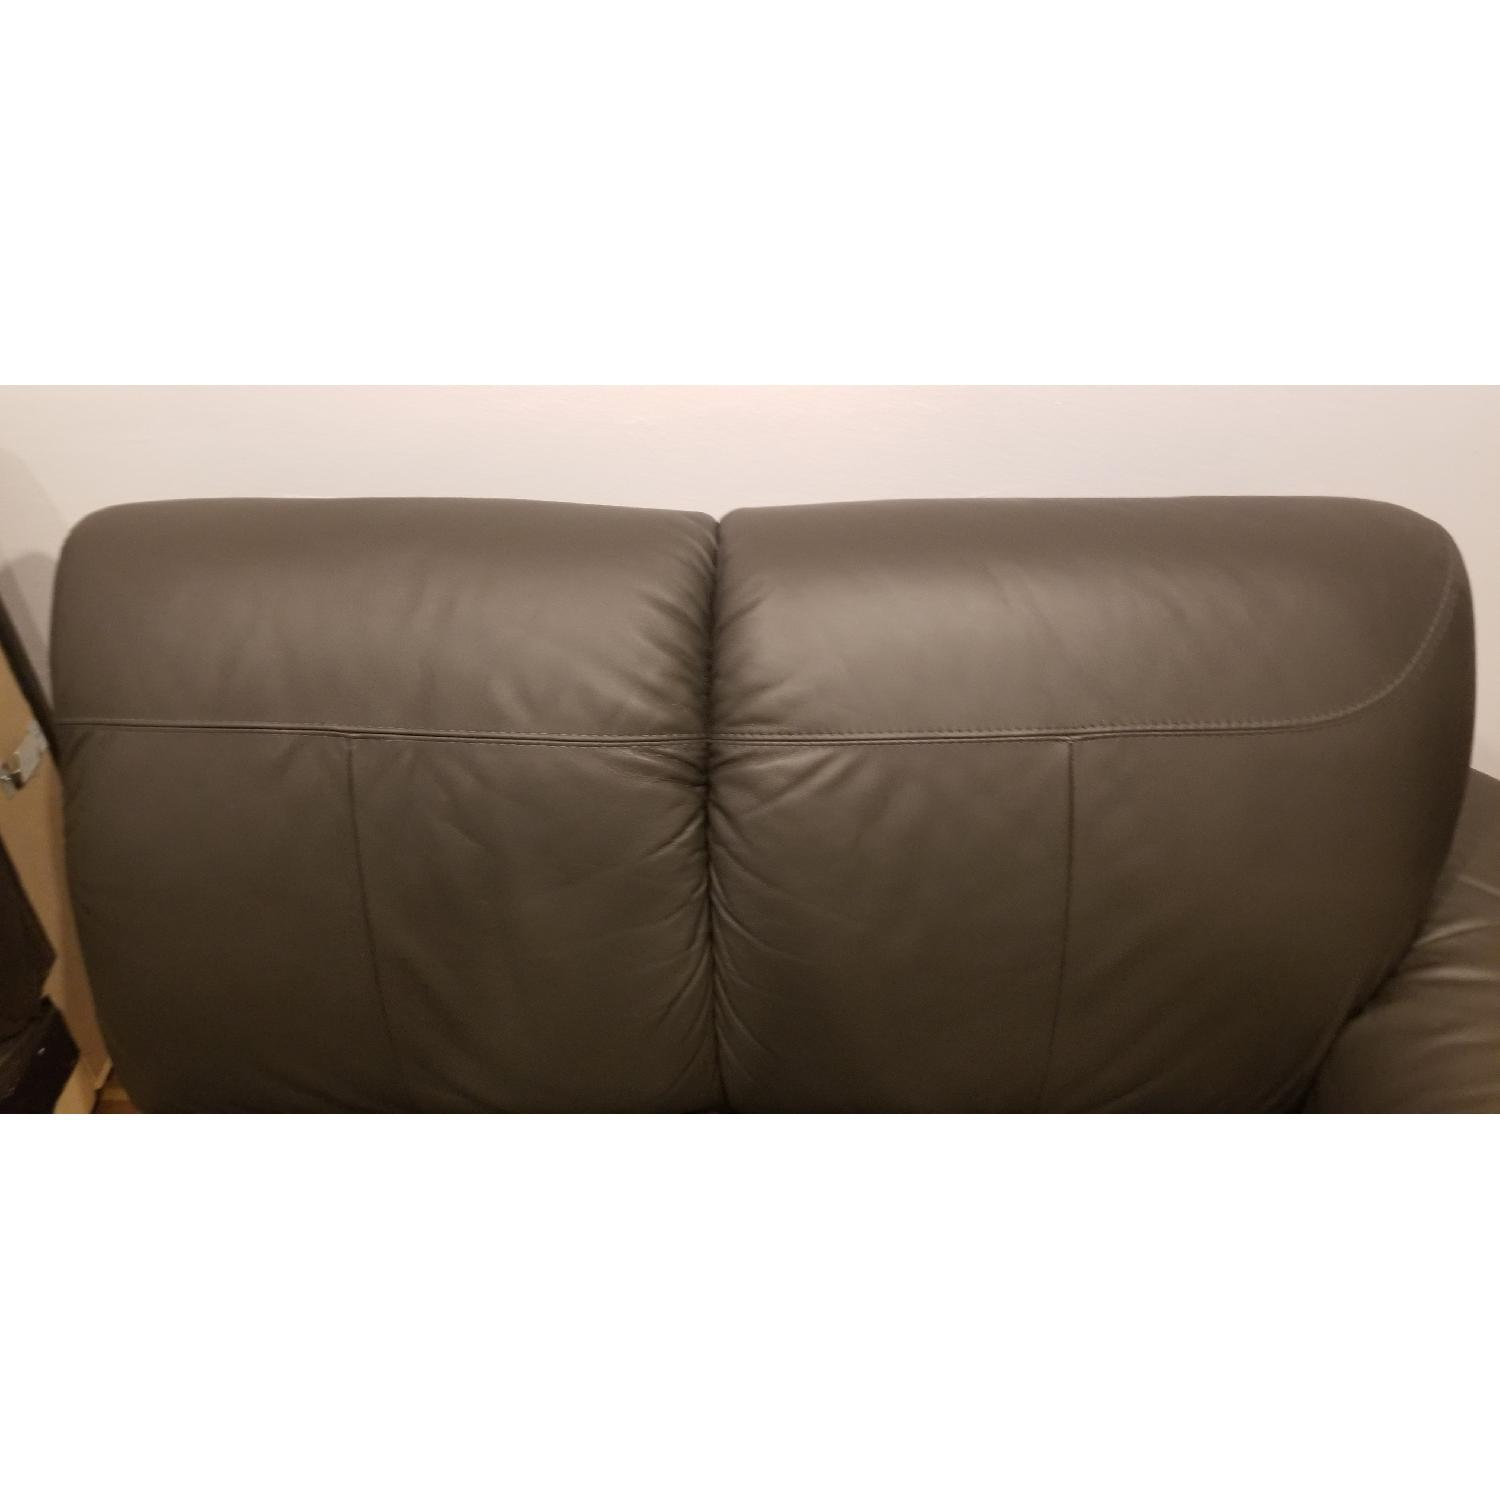 Ikea Timsfors Faux Leather Sectional Sofa - image-19